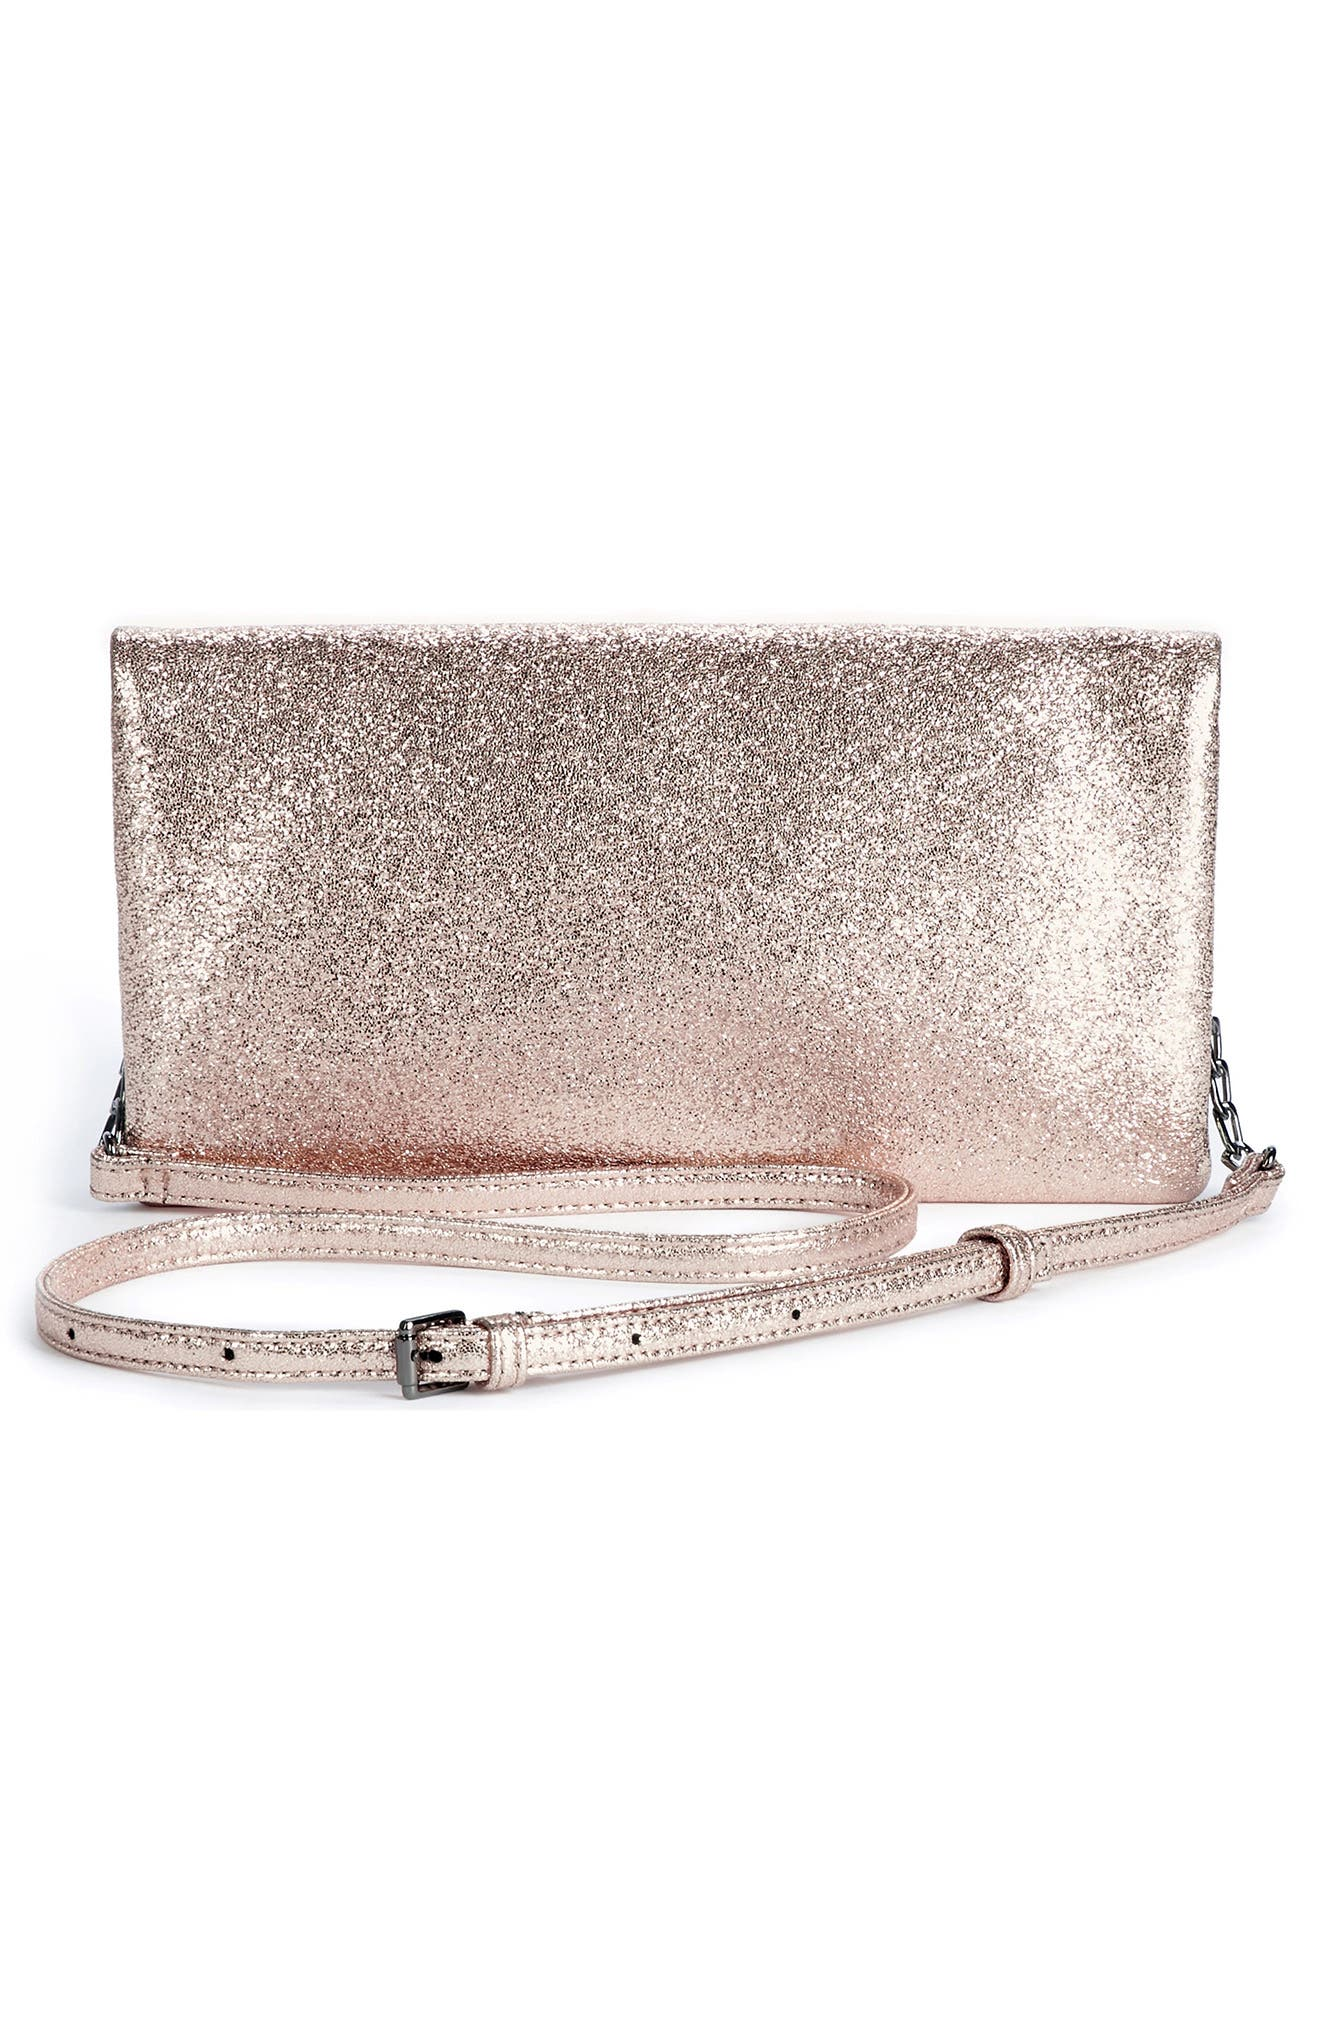 Maci Crinkle Faux Leather Foldover Clutch,                             Alternate thumbnail 3, color,                             Rosegold